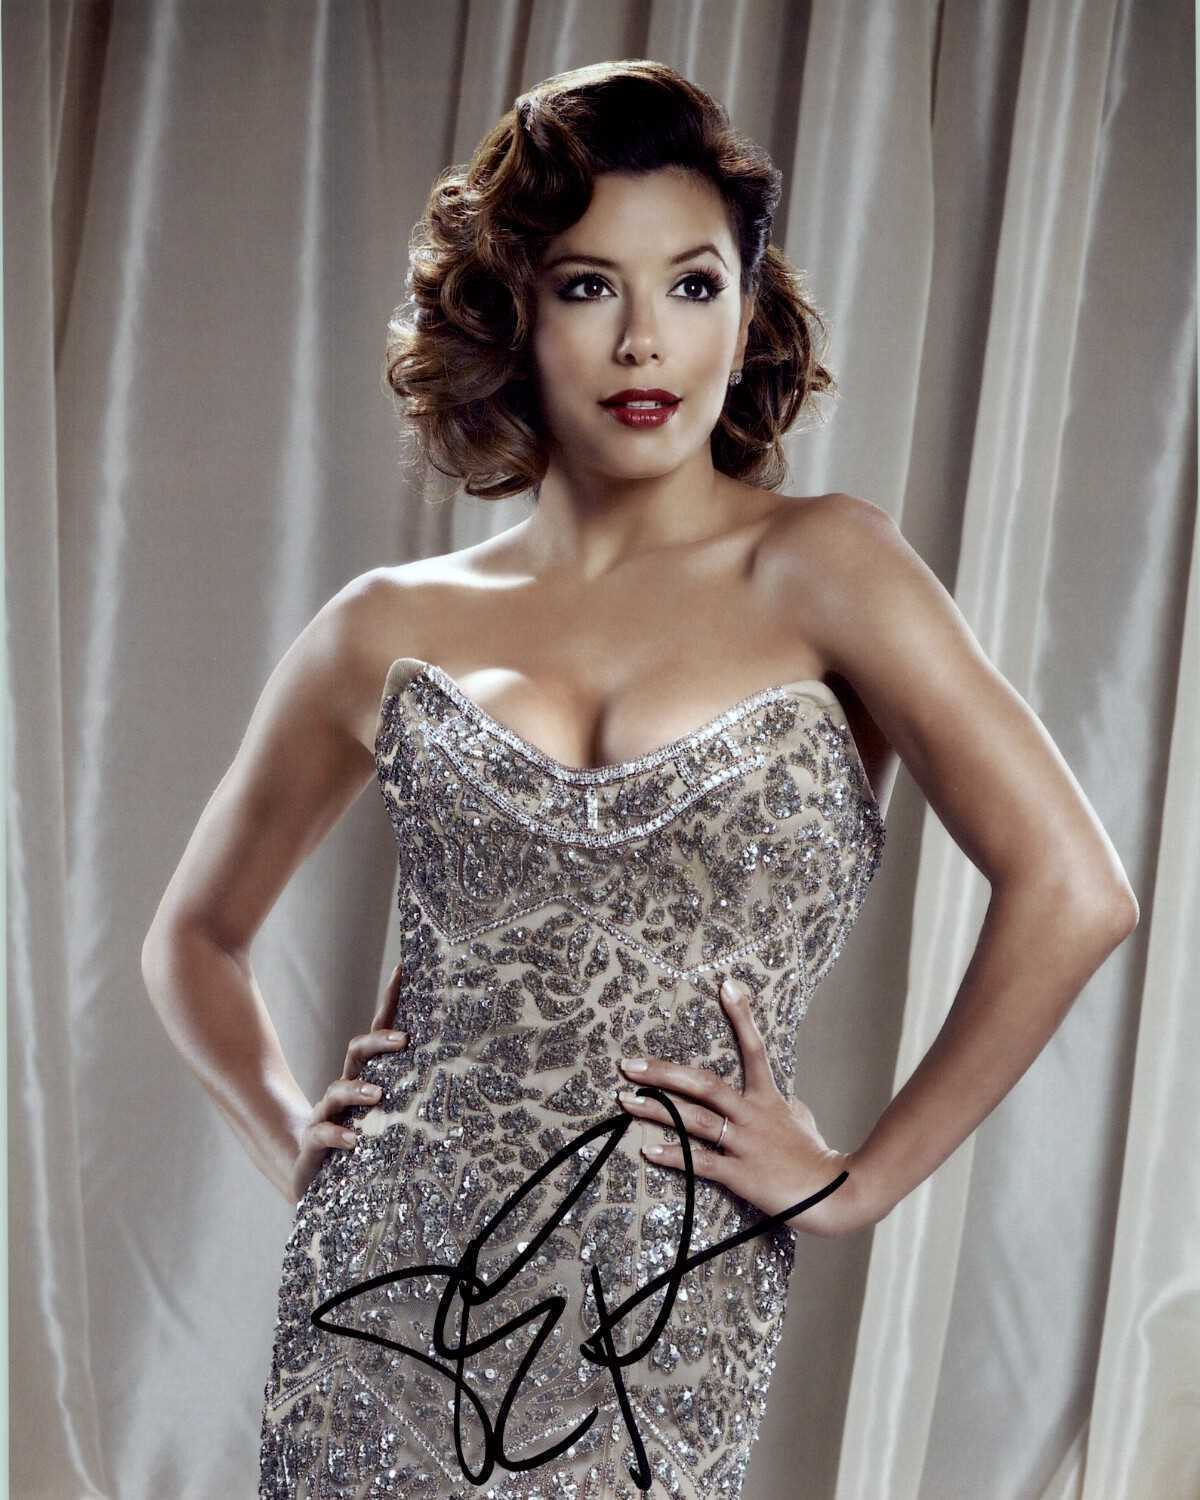 Primary image for Eva Longoria Signed Autographed Glossy 8x10 Photo